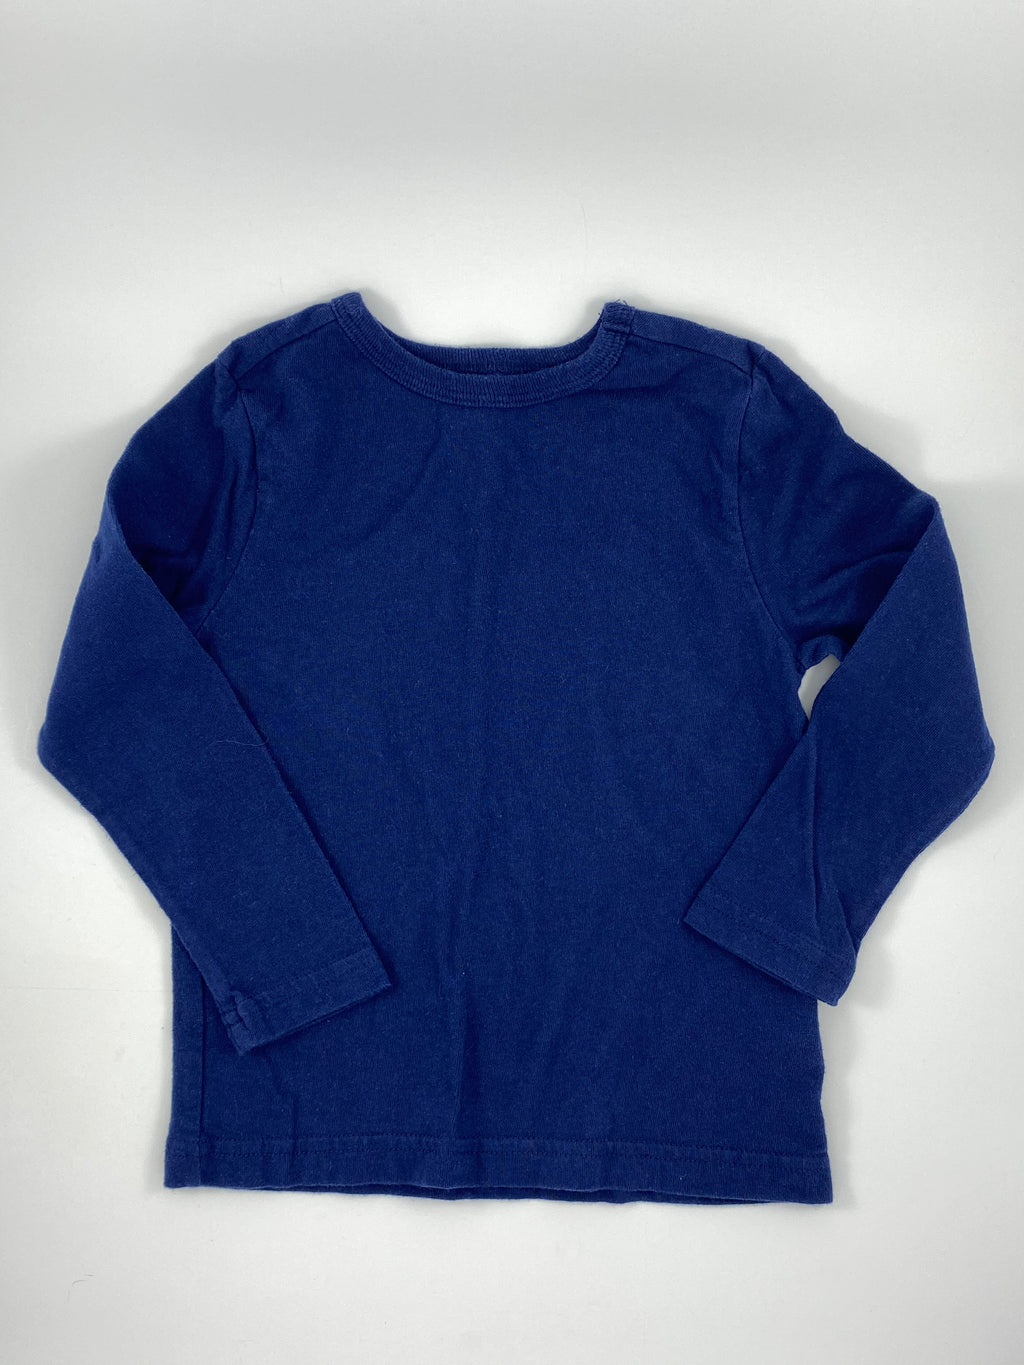 Boy's Shirt - Size 3t